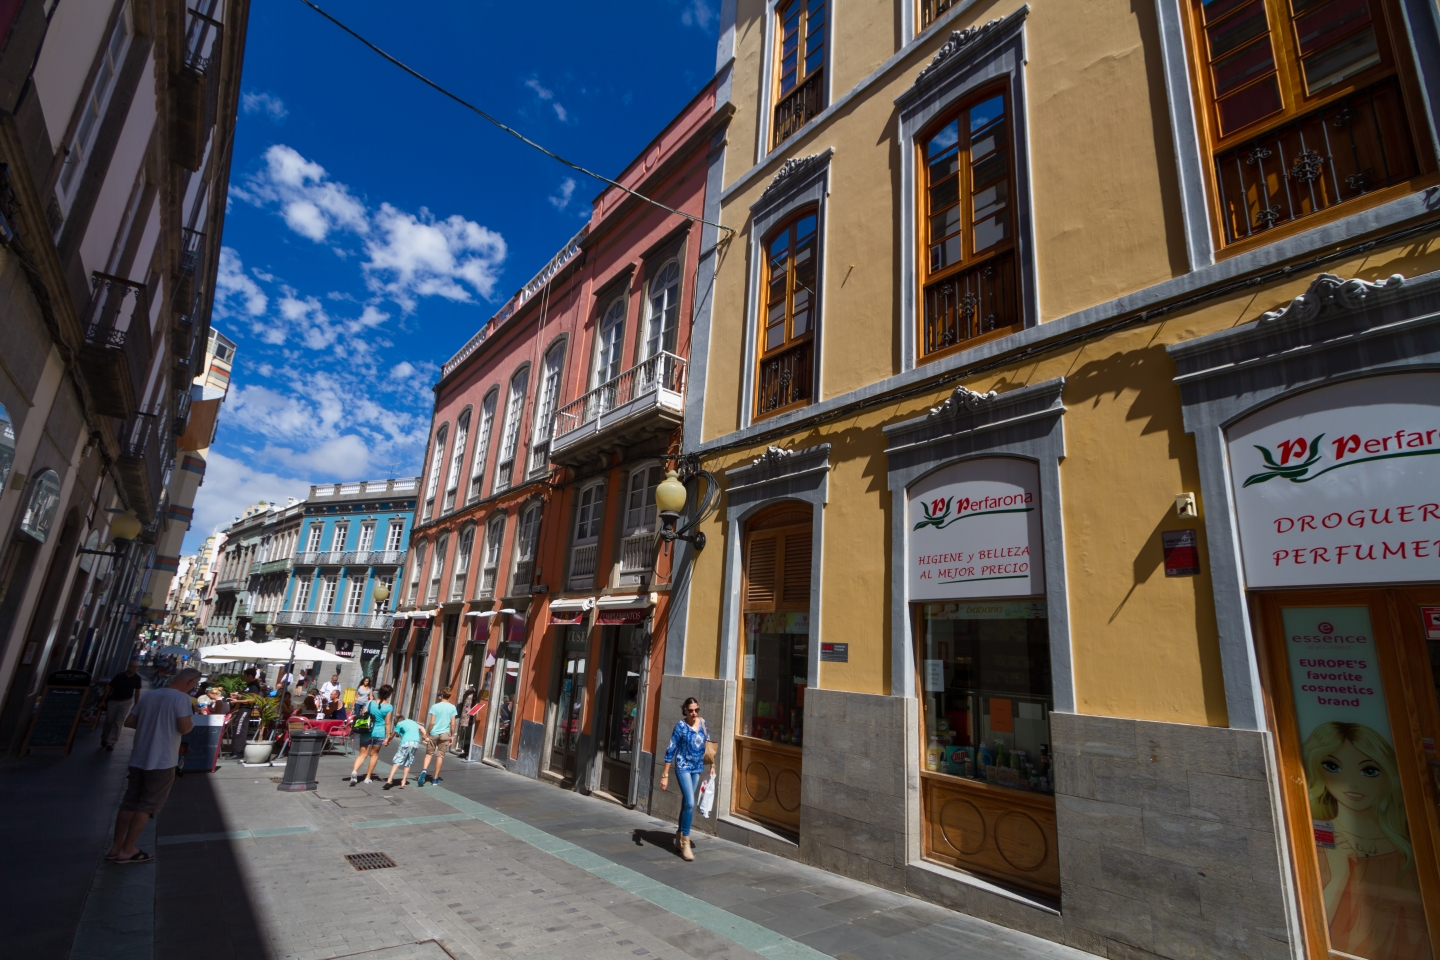 Triana shopping district in Las Palmas de Gran Canaria